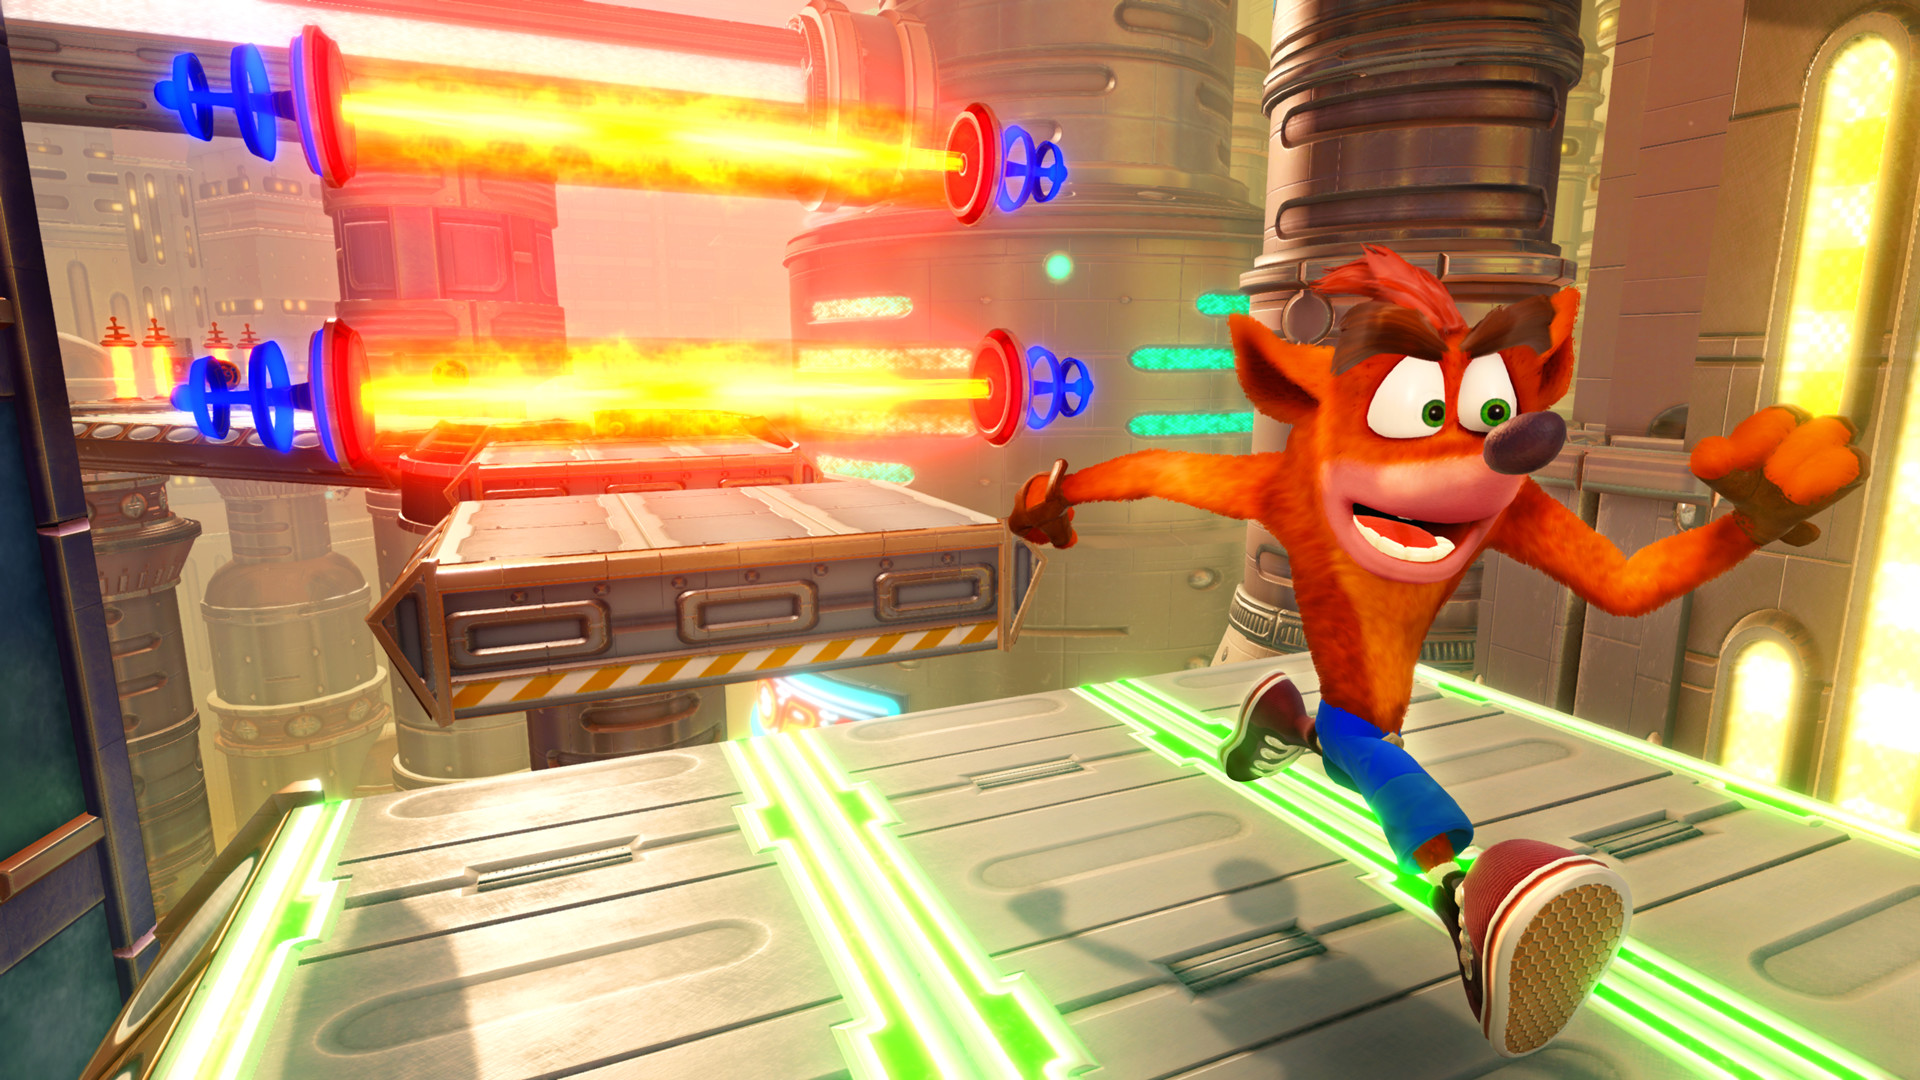 Grab the Crash Bandicoot N. Sane Trilogy, Spyro Reignited Trilogy and COD: WW2 for just $12 in latest Humble Monthly bundle | PC Gamer